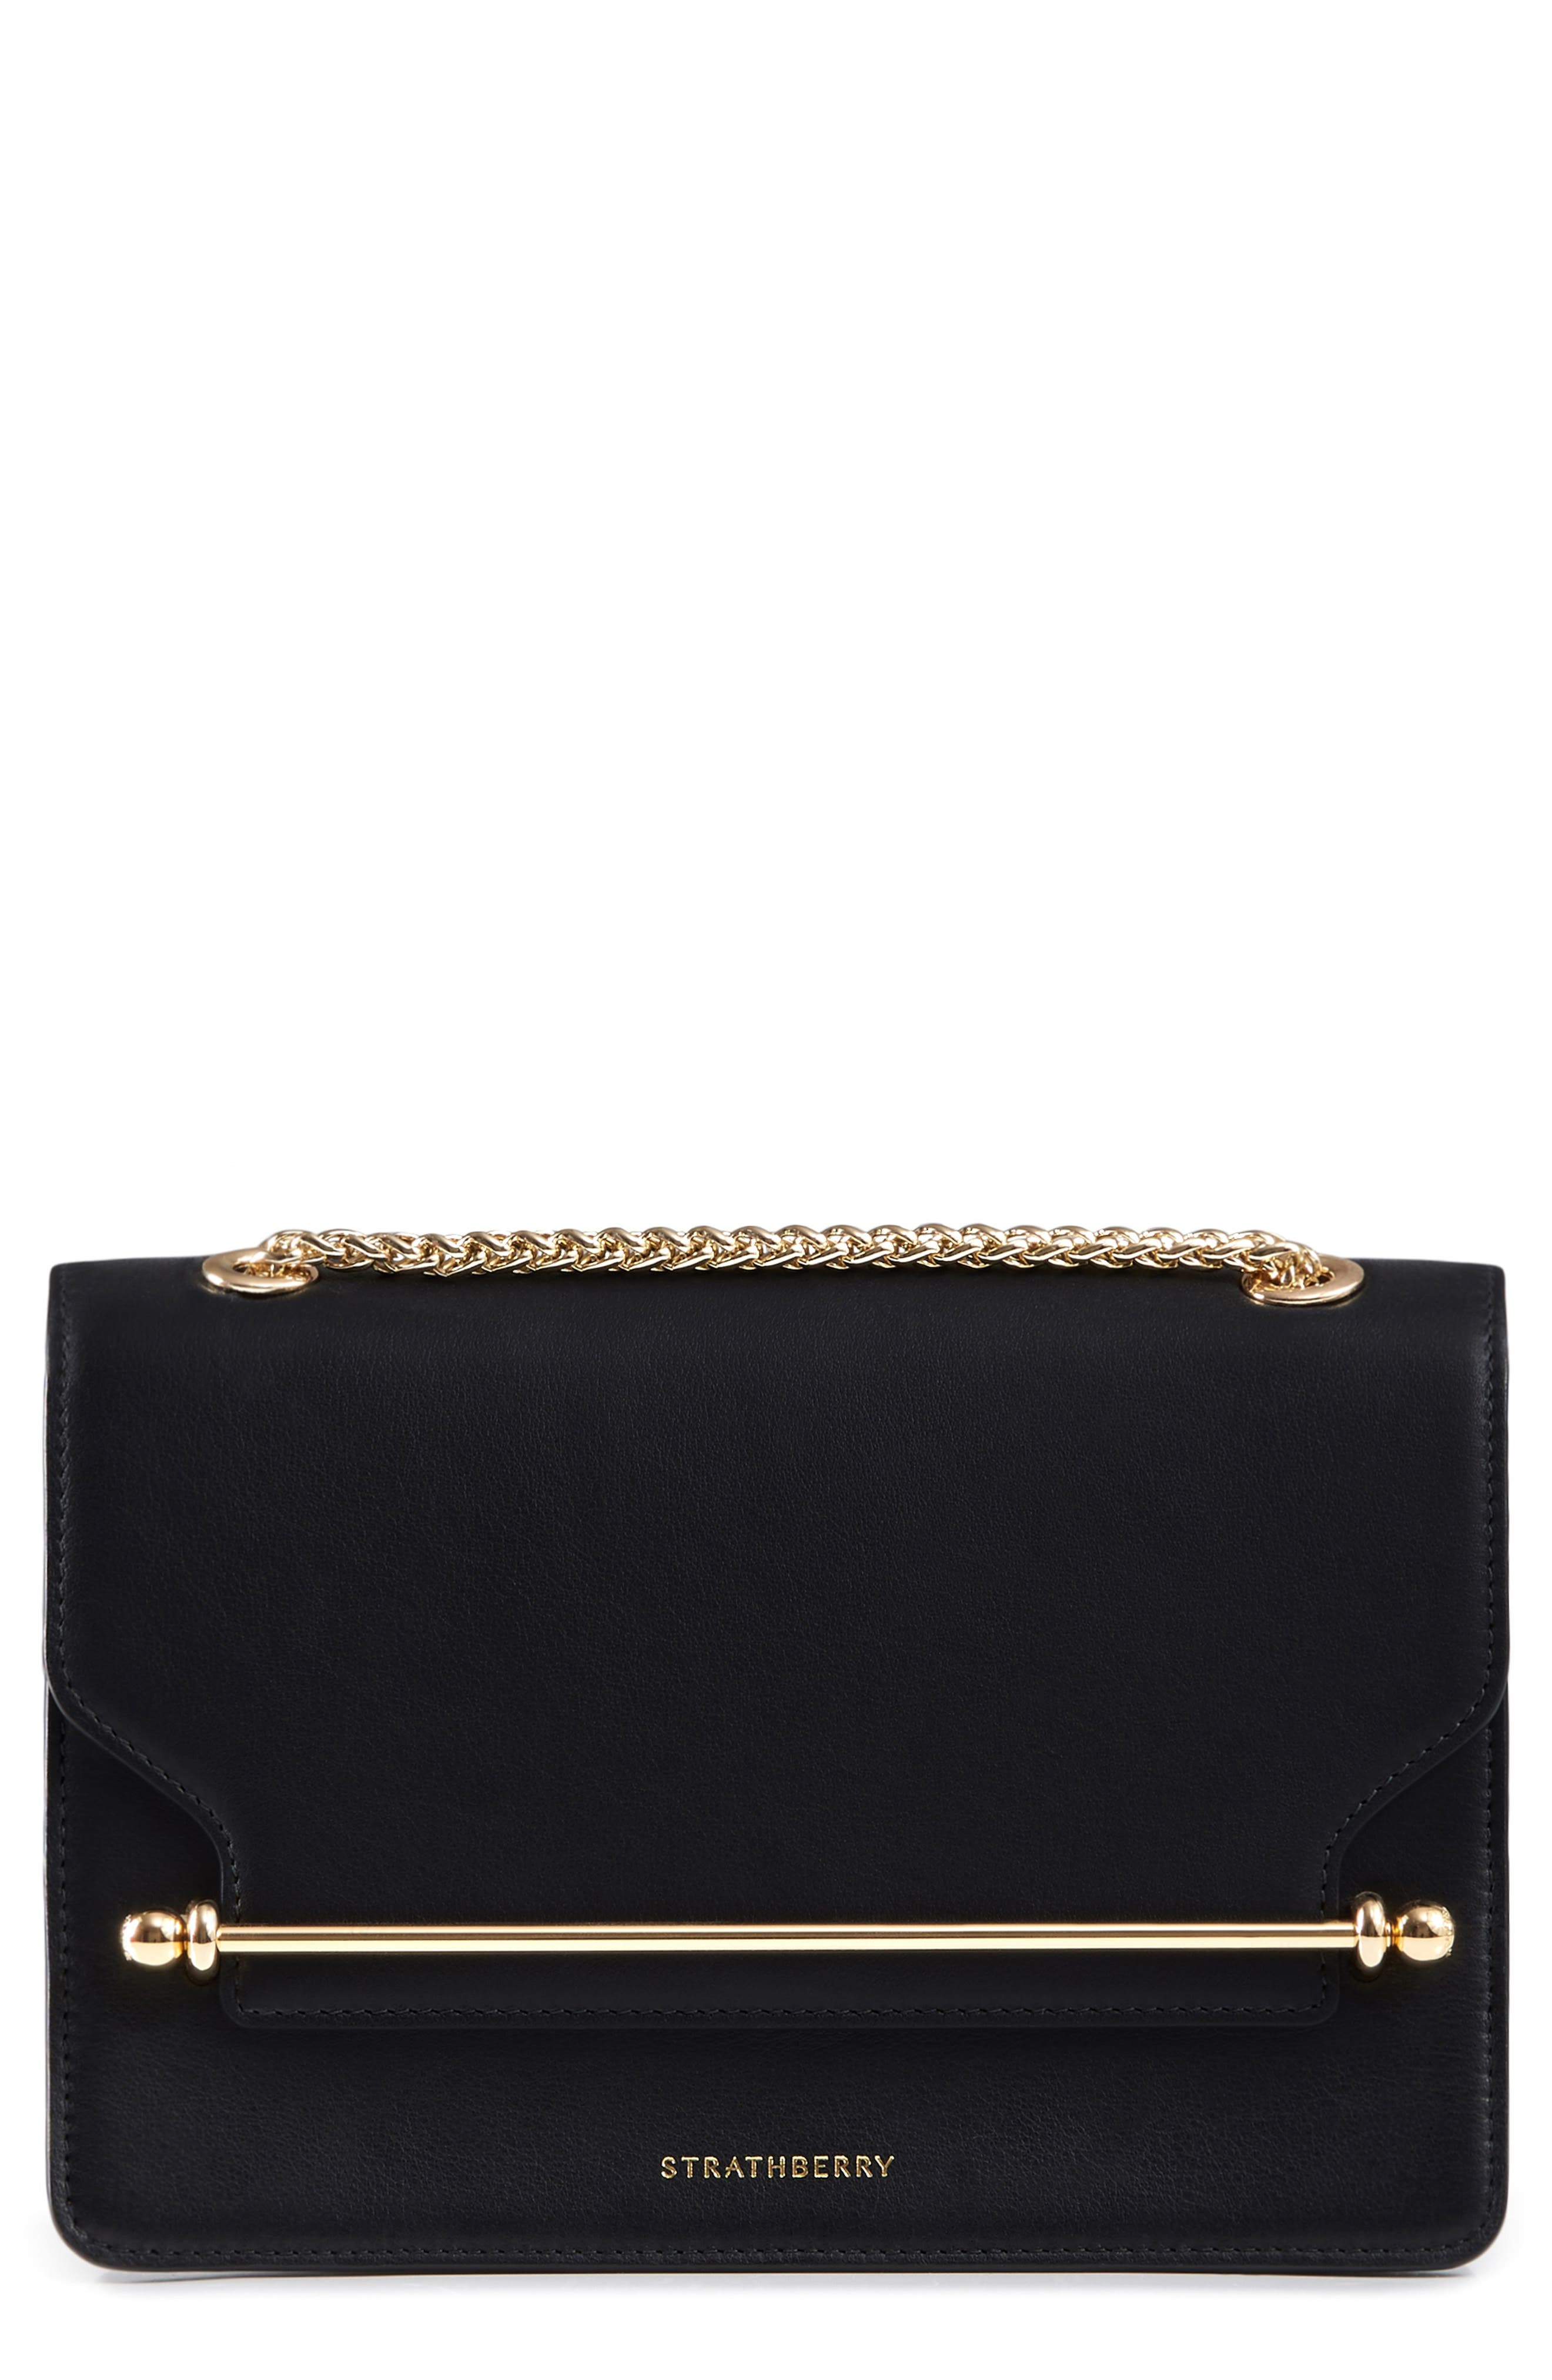 East/West Leather Crossbody Bag,                         Main,                         color, BLACK